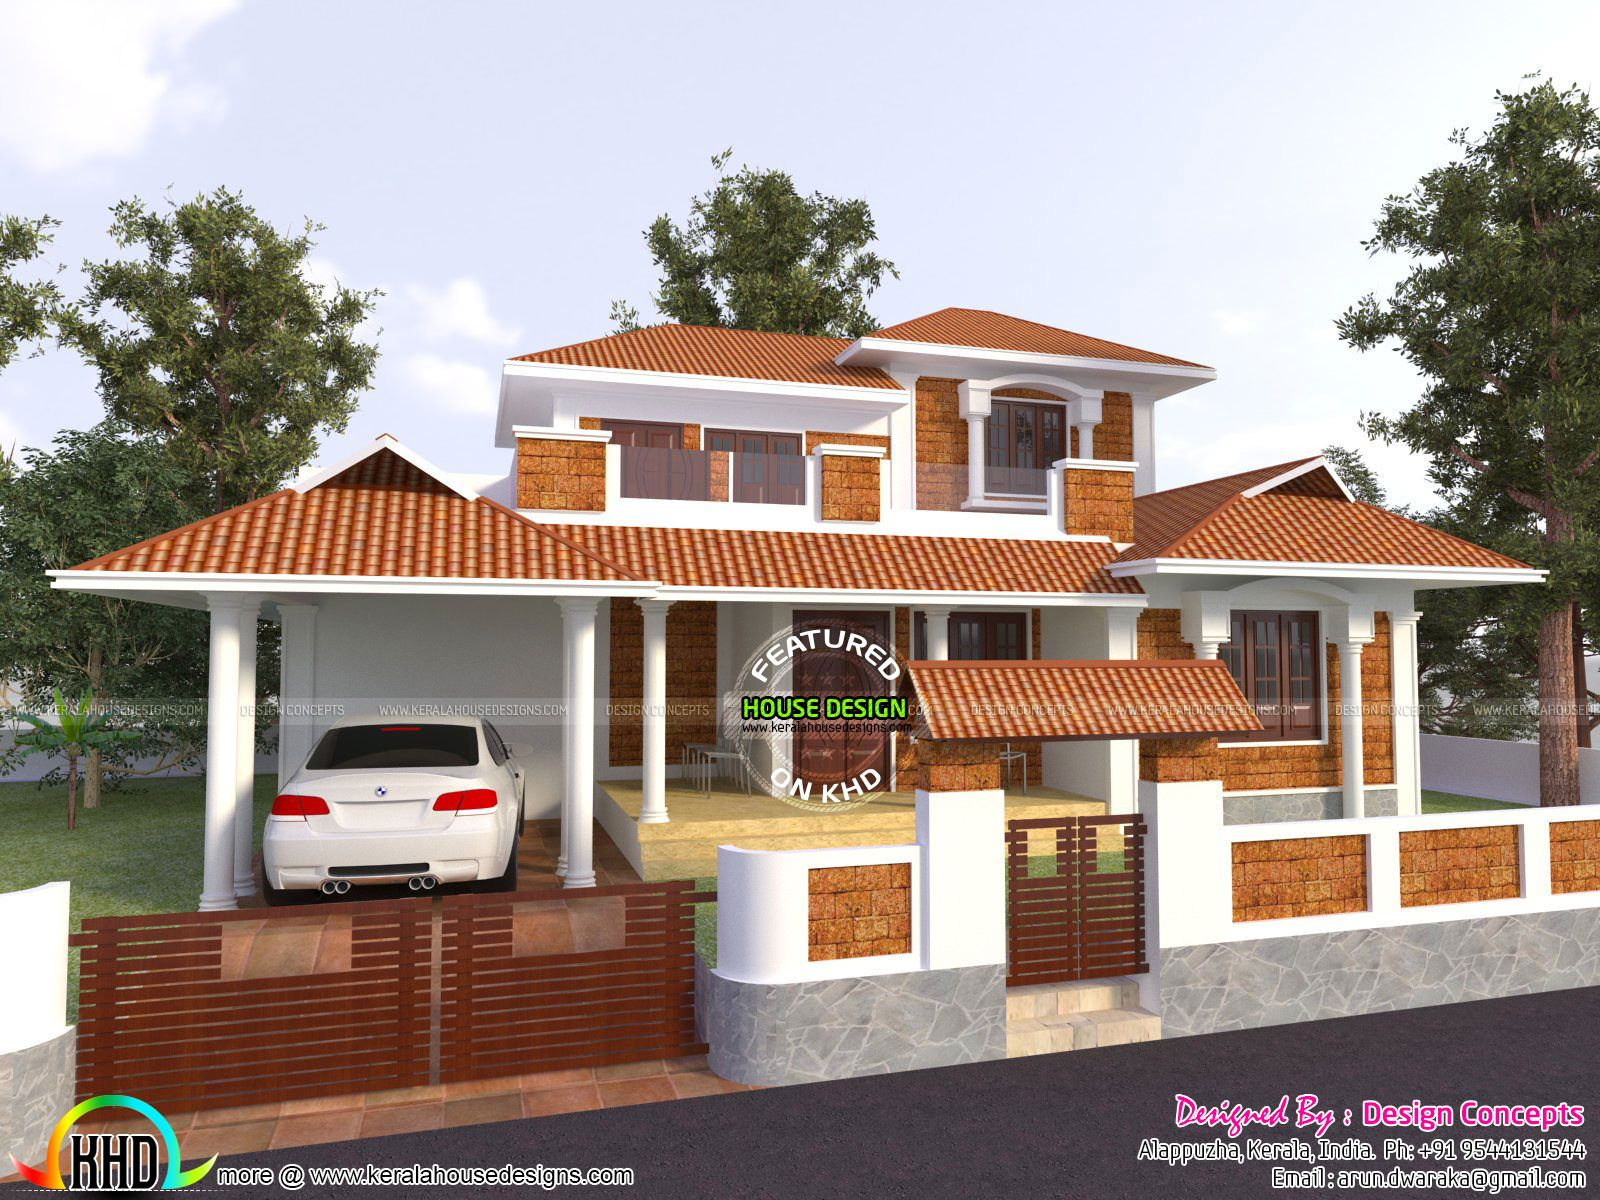 traditional-house.jpg 1.600×1.200 Pixel | For my home | Pinterest ...